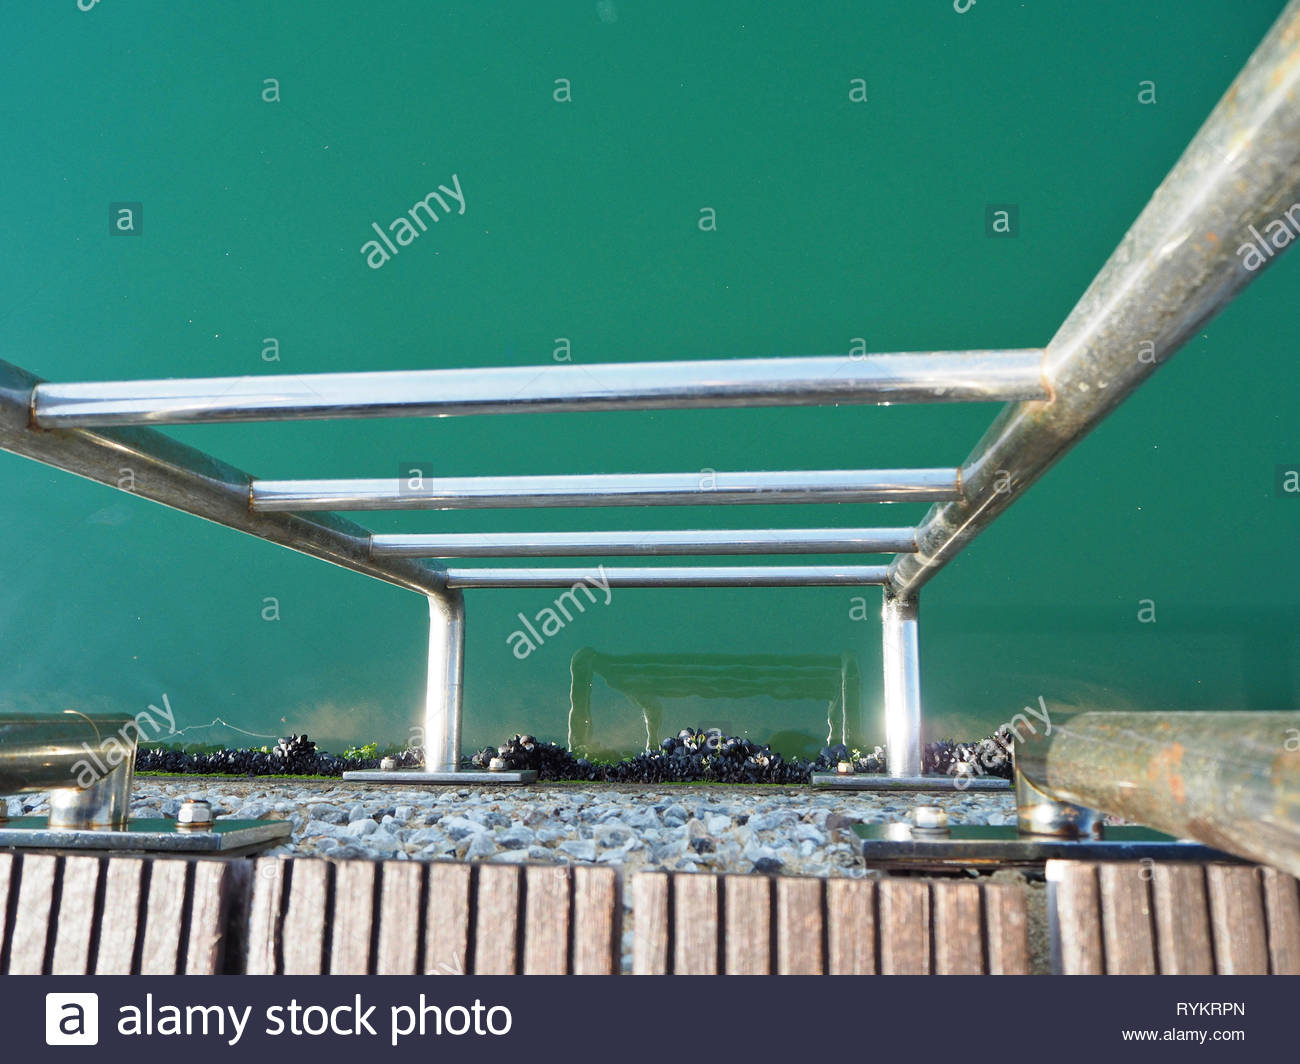 downwards view of a stainless steel stairway to the sea - Stock Image